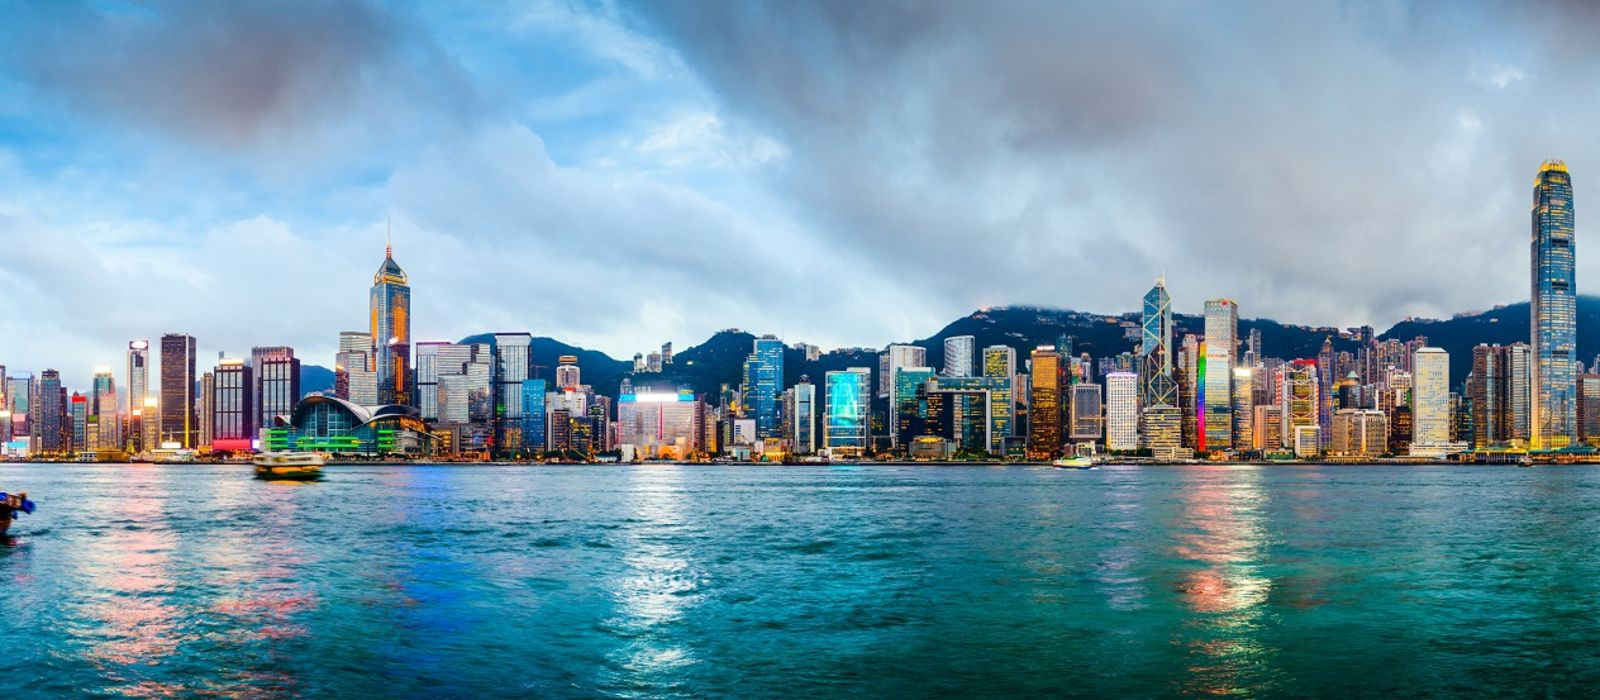 Things to do in Hong Kong - Visit Victoria Harbor